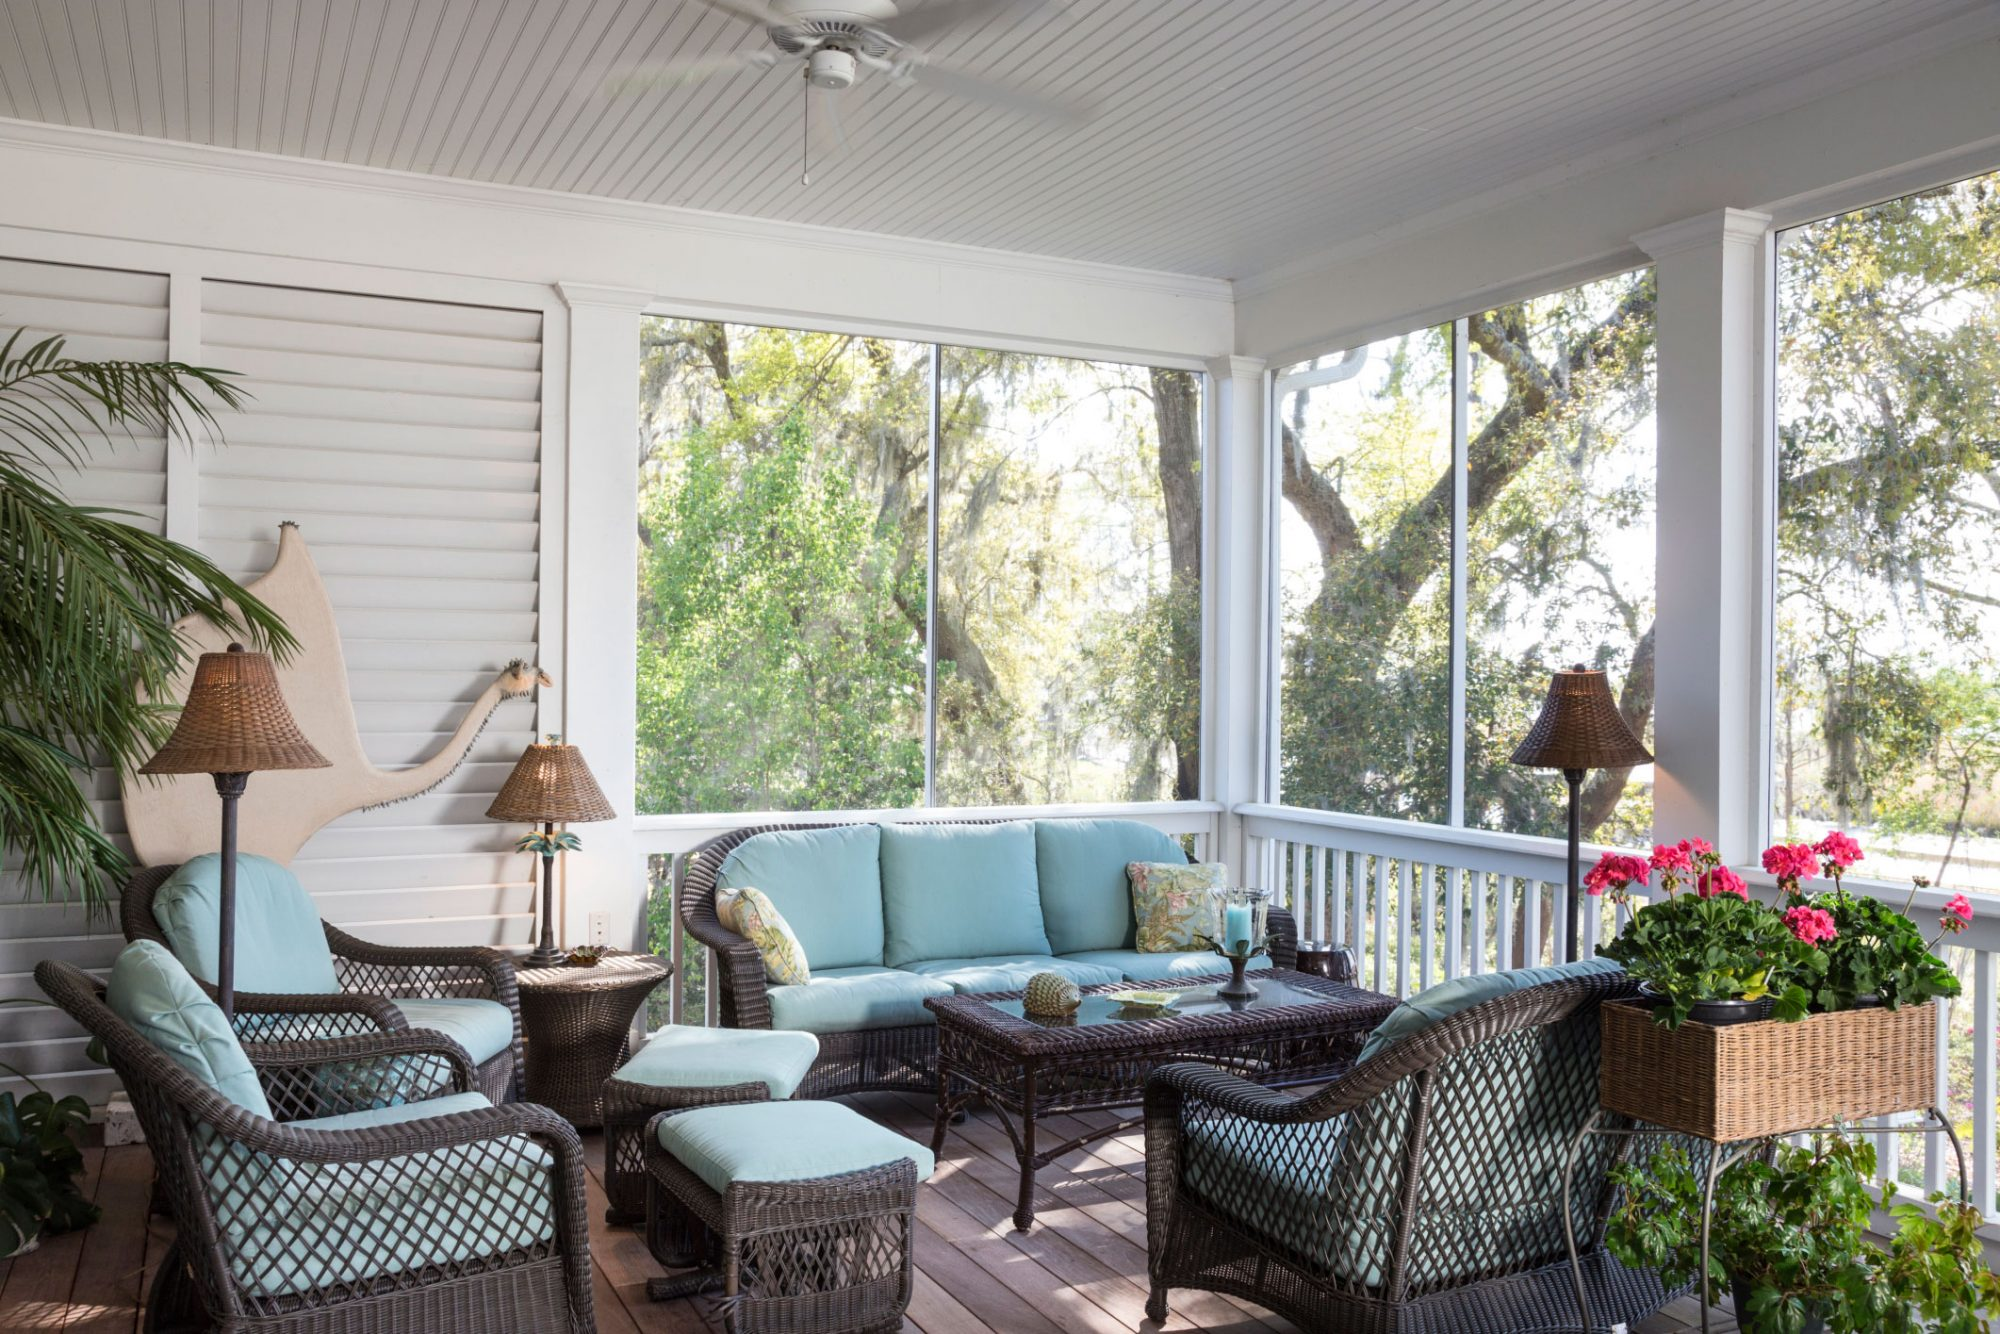 5 Tips For Your Screened In Porch From Designer Elle Cole